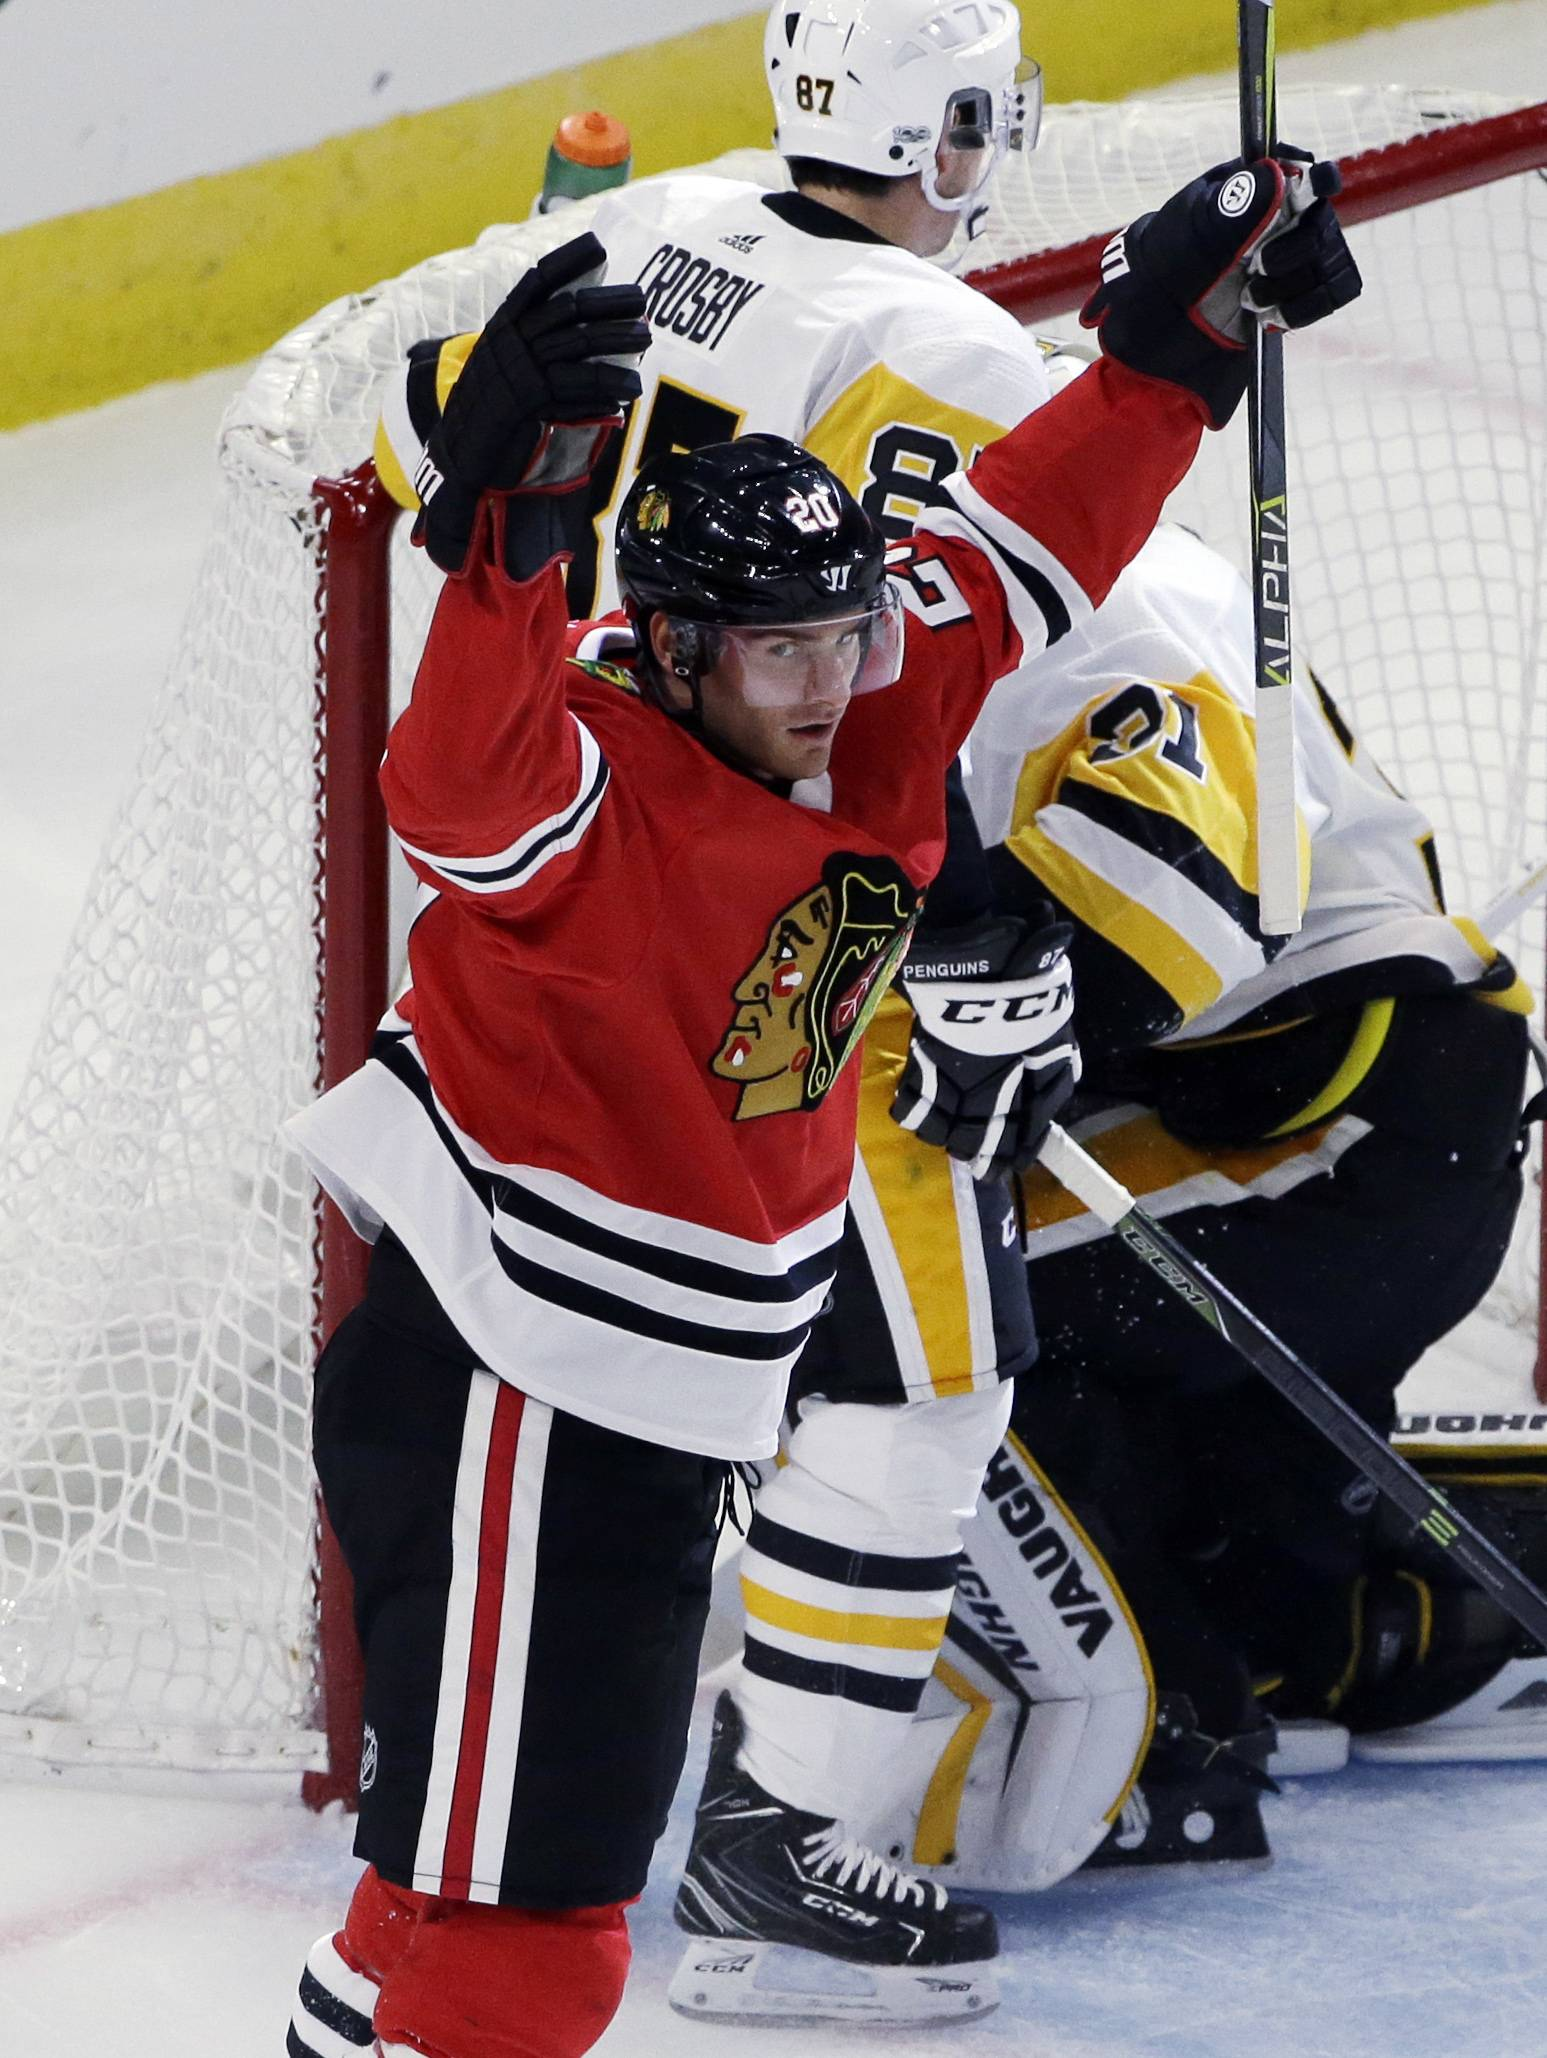 Chicago Blackhawks left wing Brandon Saad celebrates after scoring his first goal during the first period of an NHL hockey game against the Pittsburgh Penguins, Thursday, Oct. 5, 2017, in Chicago.